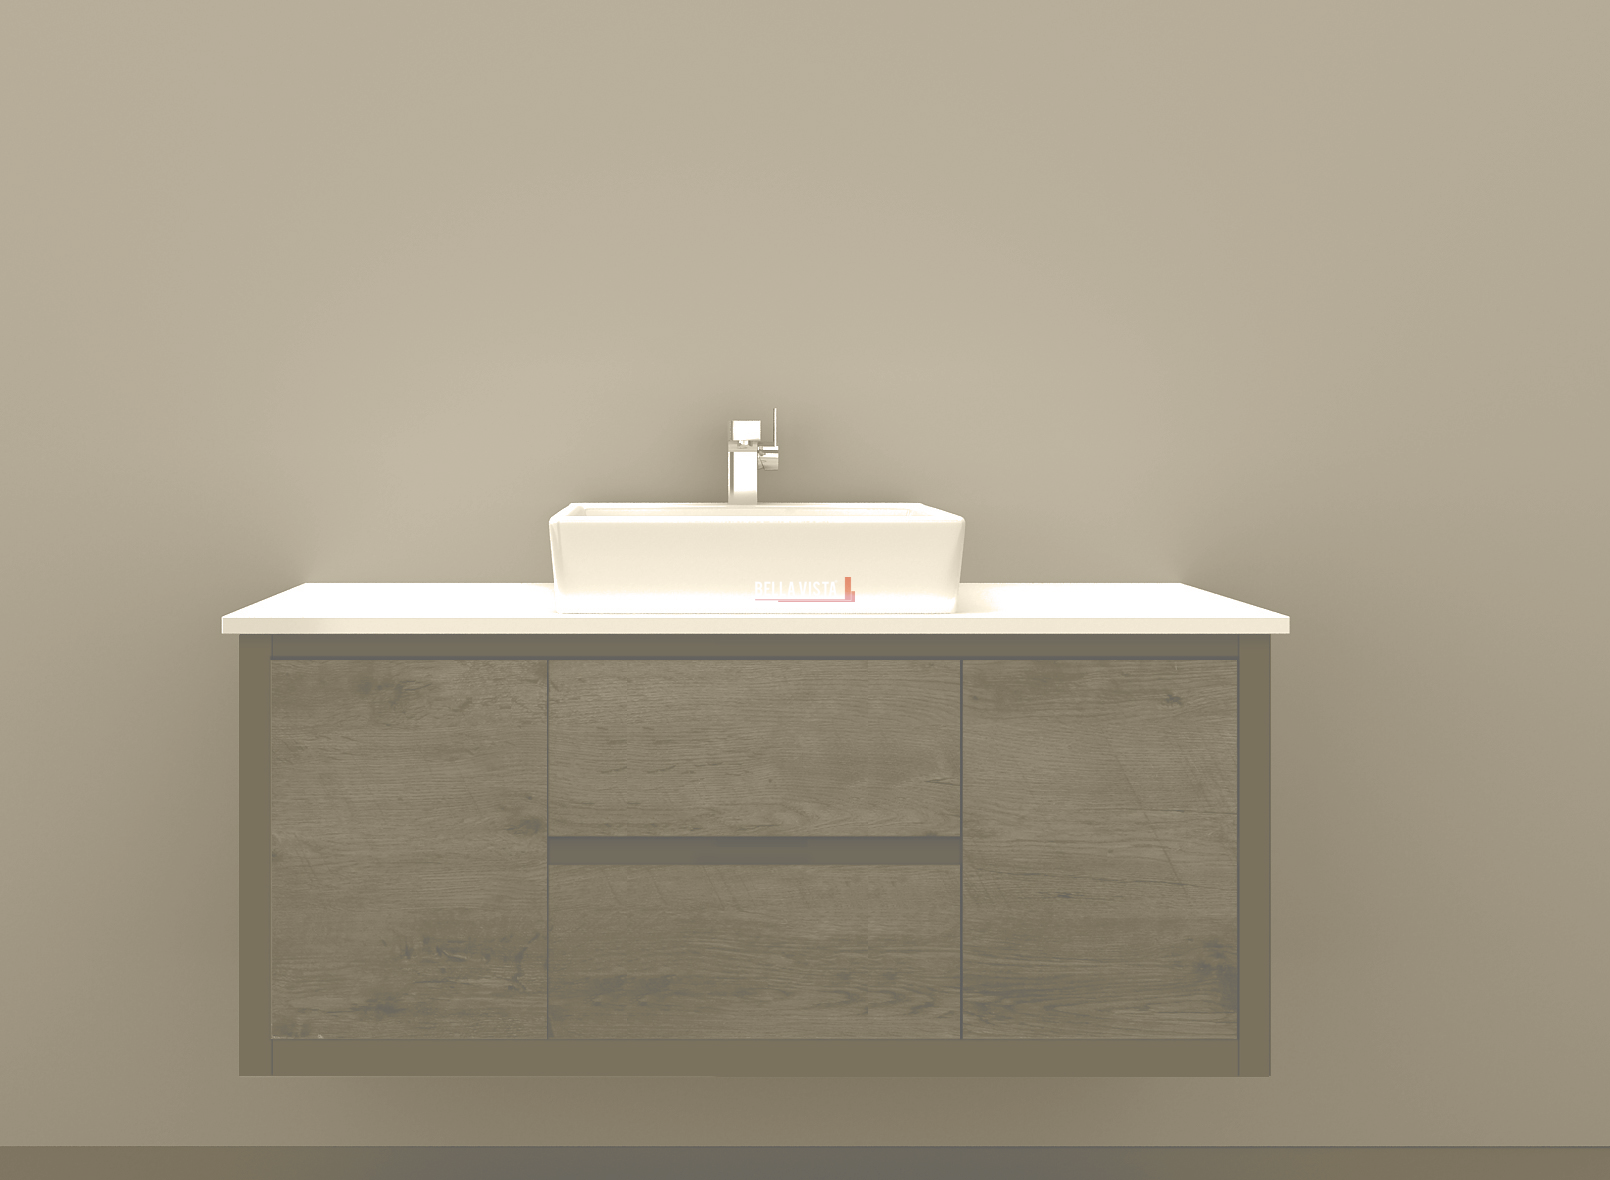 bathroom fittings why are they important. Choosing The Right Bathroom Accessories Will Add Perfect Finishing Touch To Your Bathroom. They Should Be Practical Yet Super Smart. Fittings Why Are Important